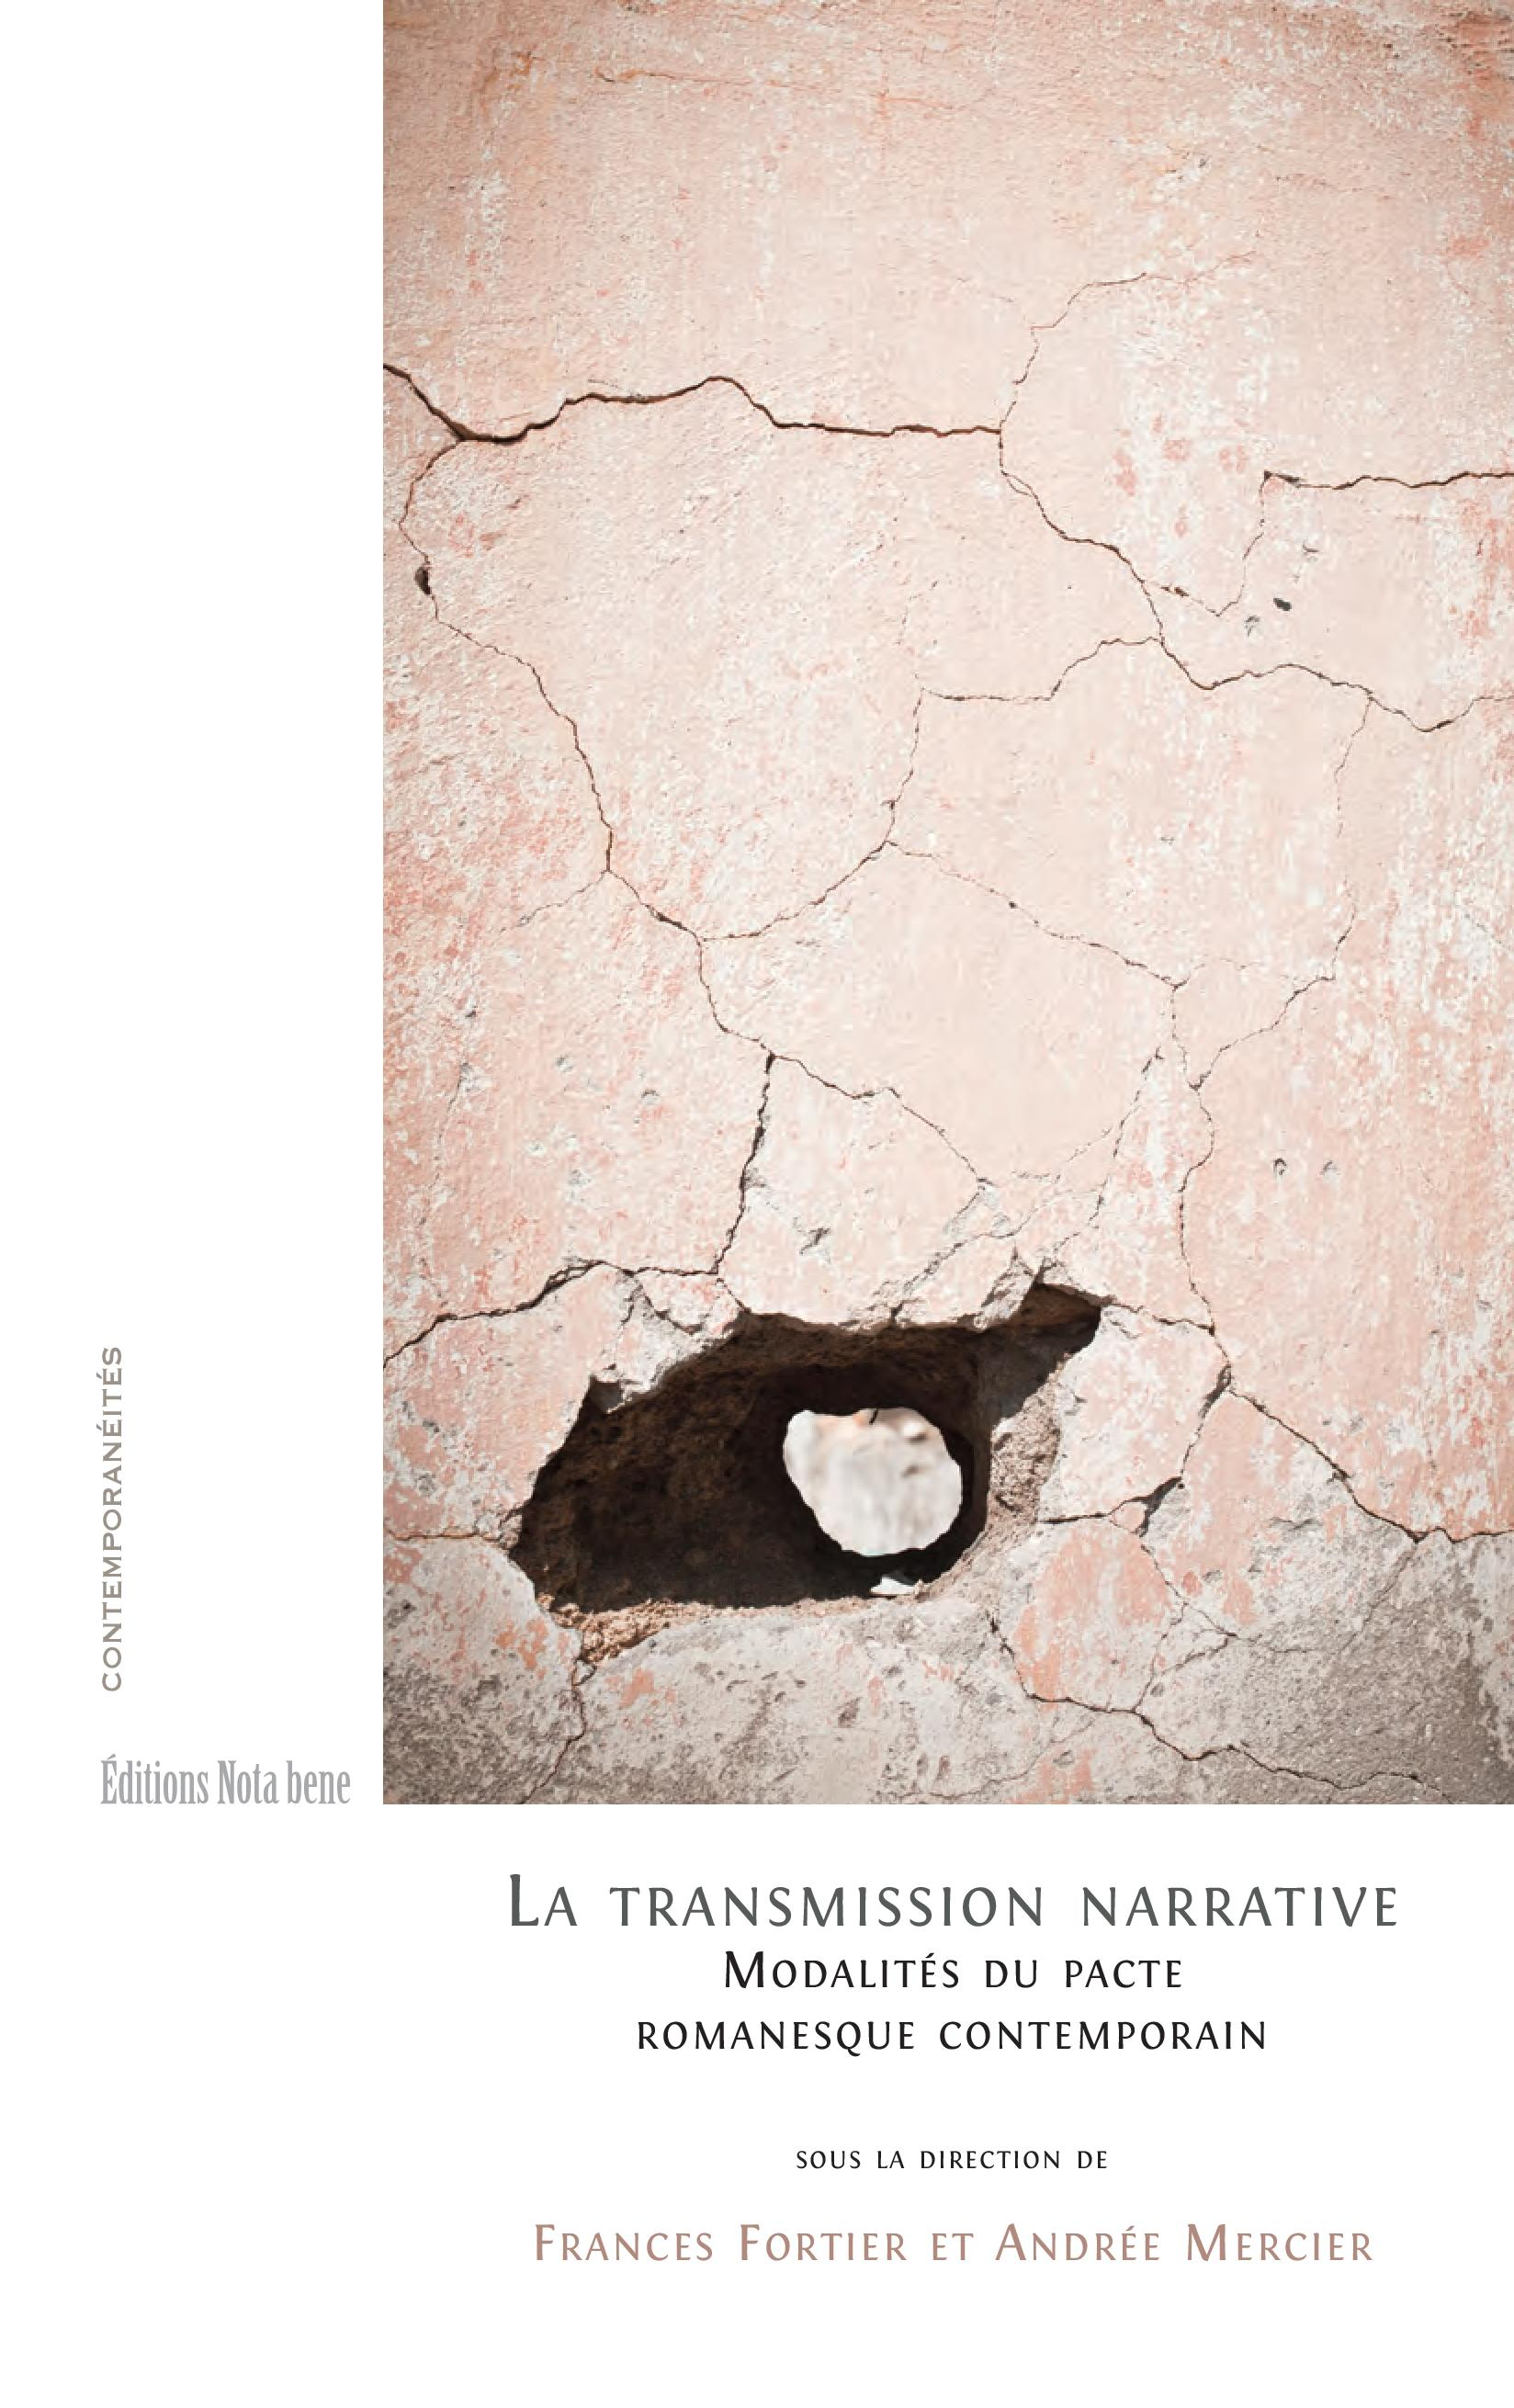 Transmission narrative, Andrée Mercier